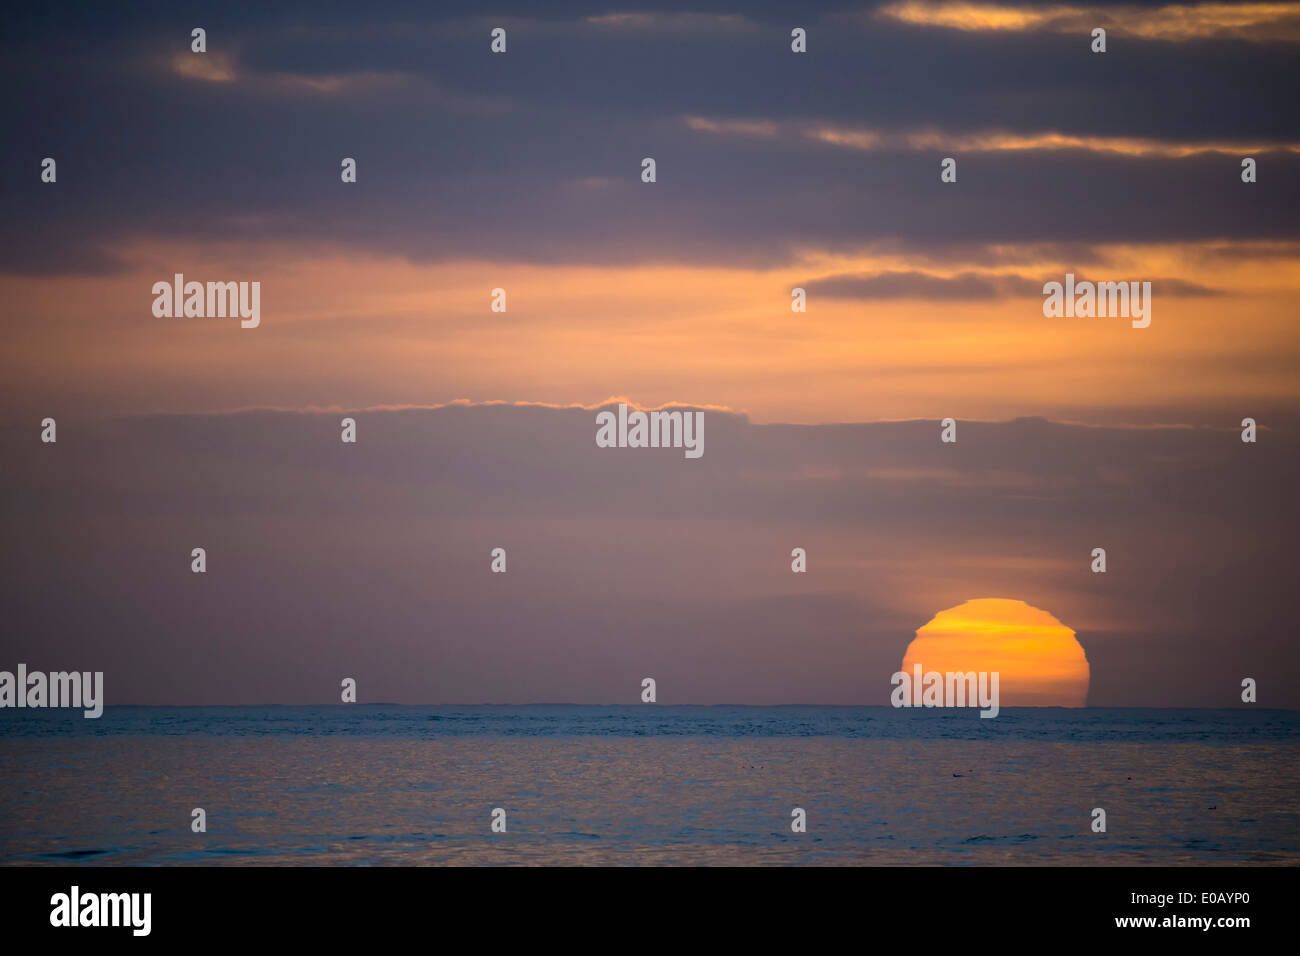 Germany, Sunset over North Sea - Stock Image